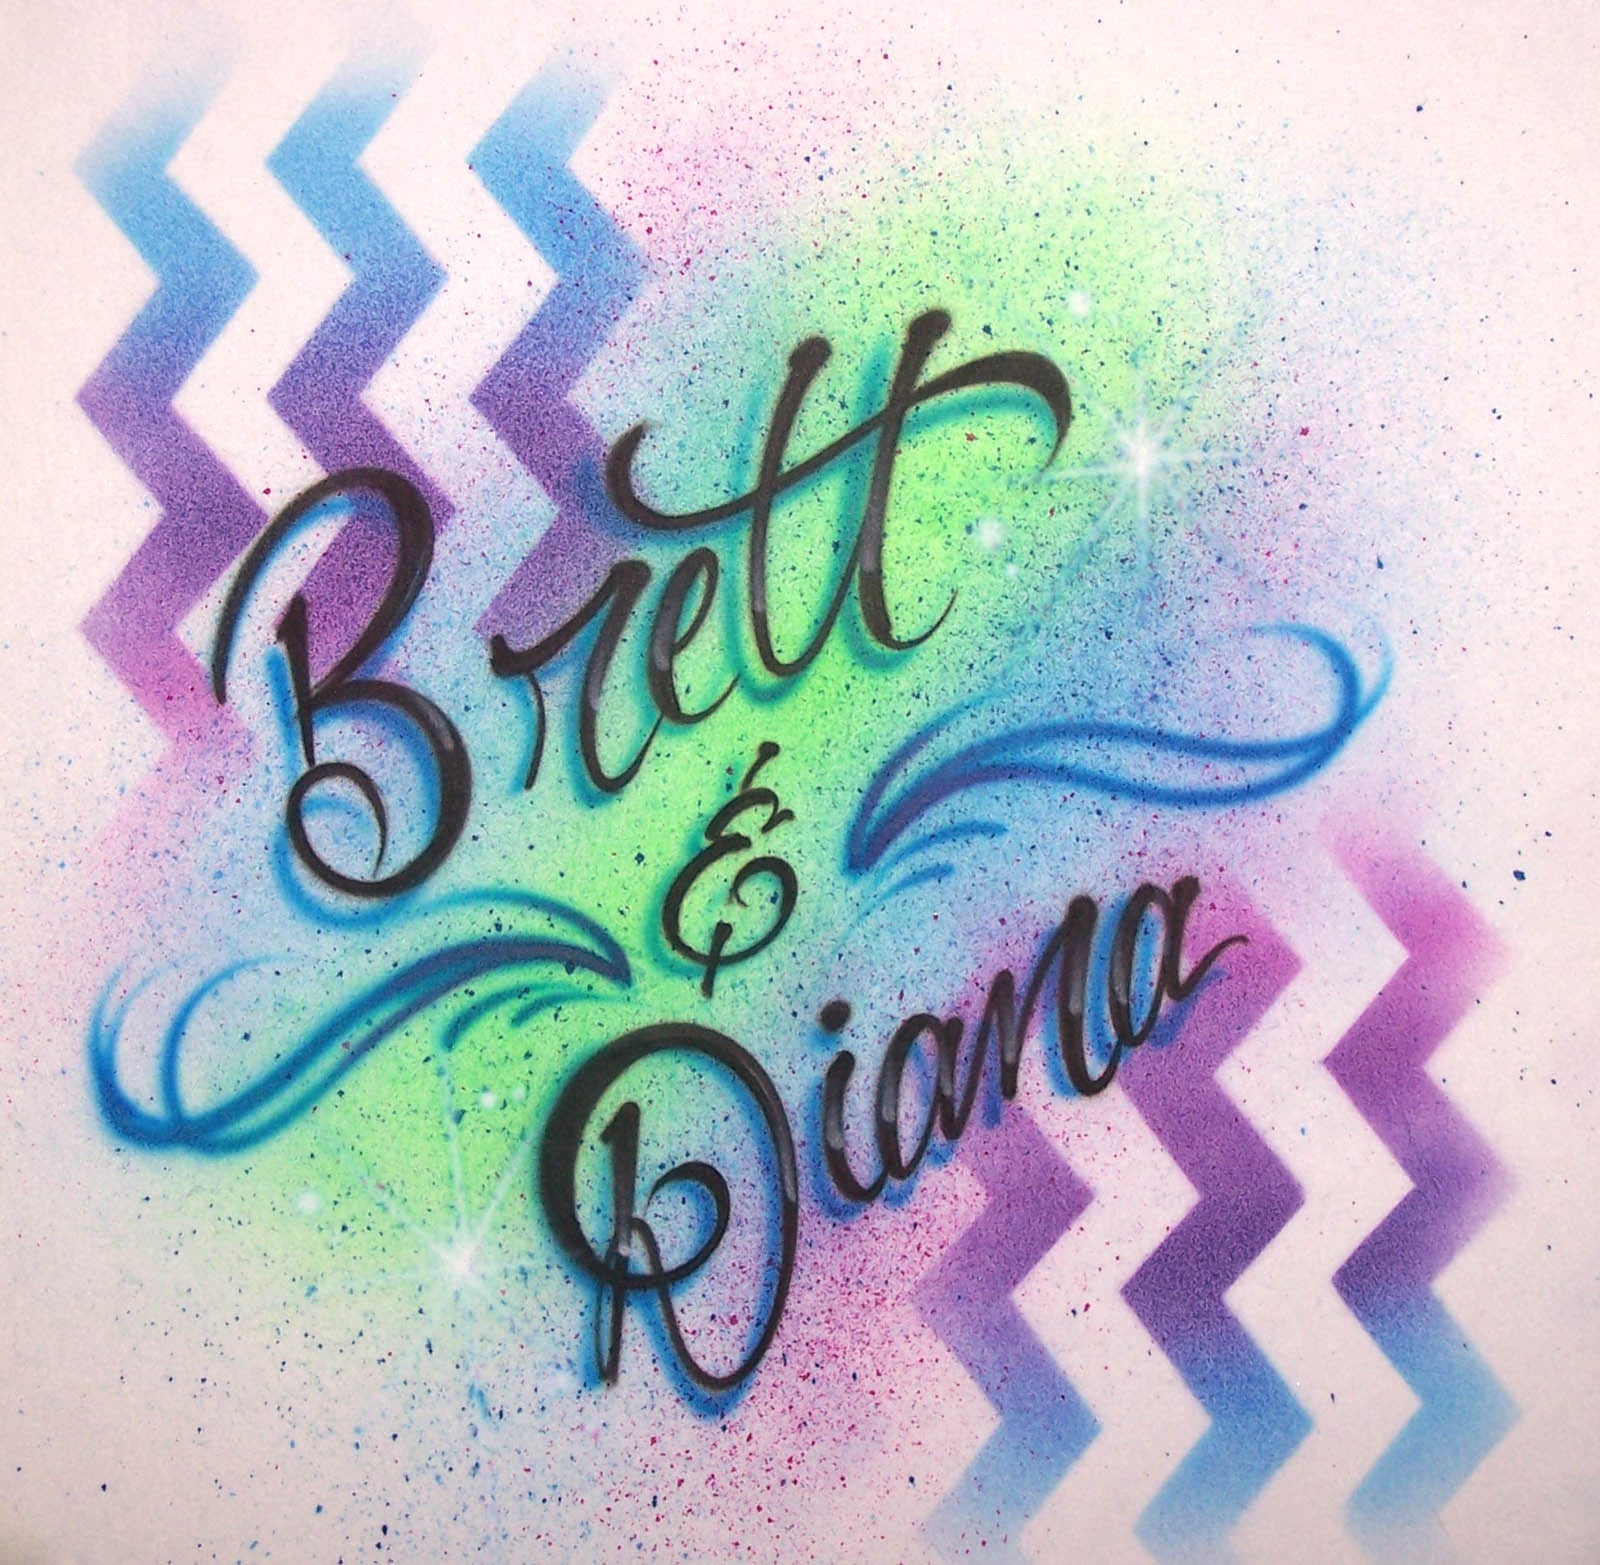 double name airbrushed chevron graphic paint background